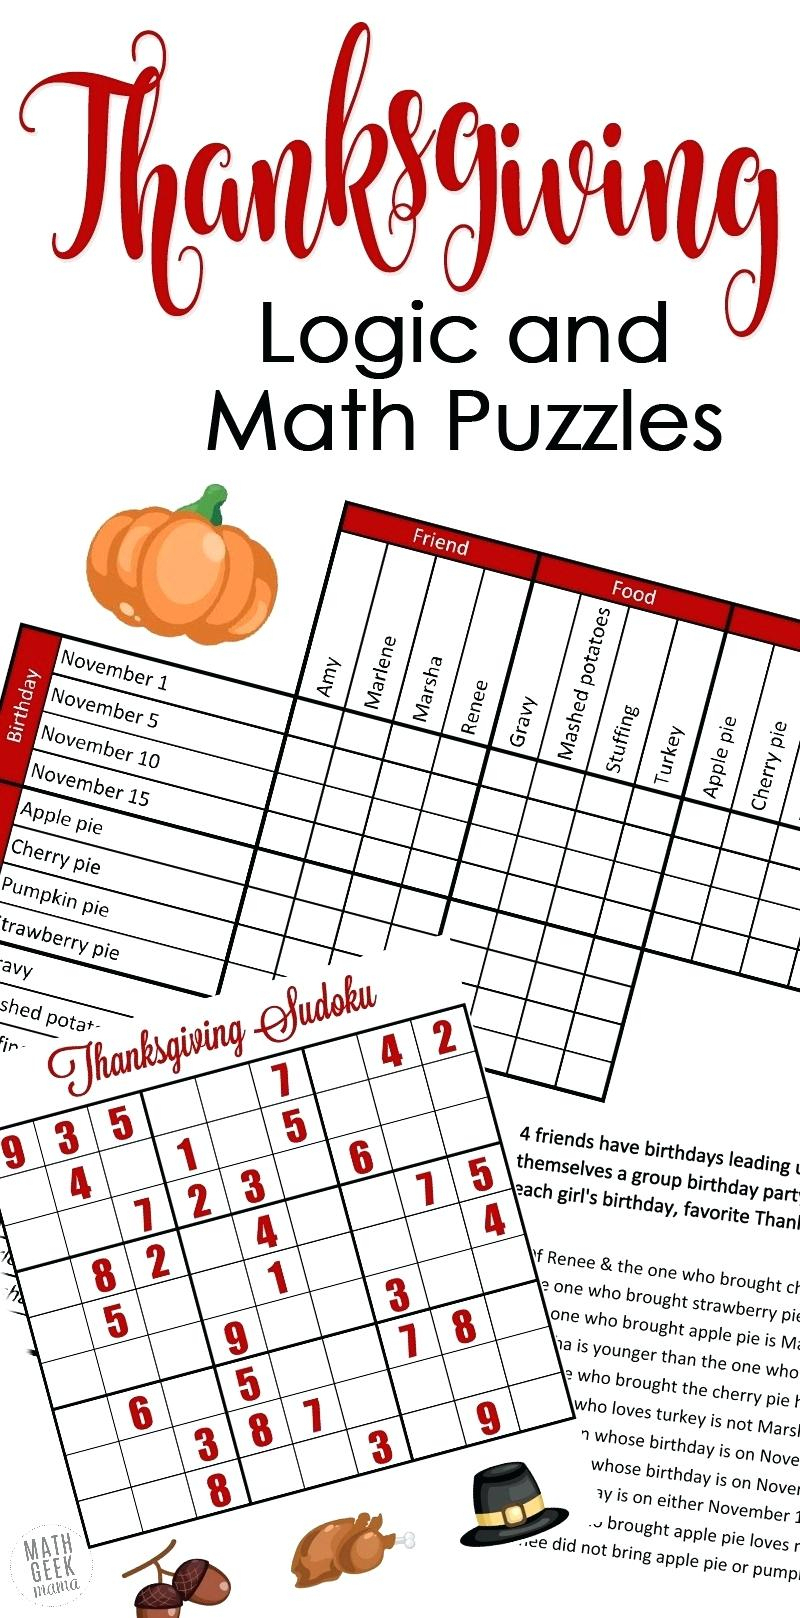 Logic Puzzles For High School It Logic Puzzles For High School - Printable Logic Puzzles Uk